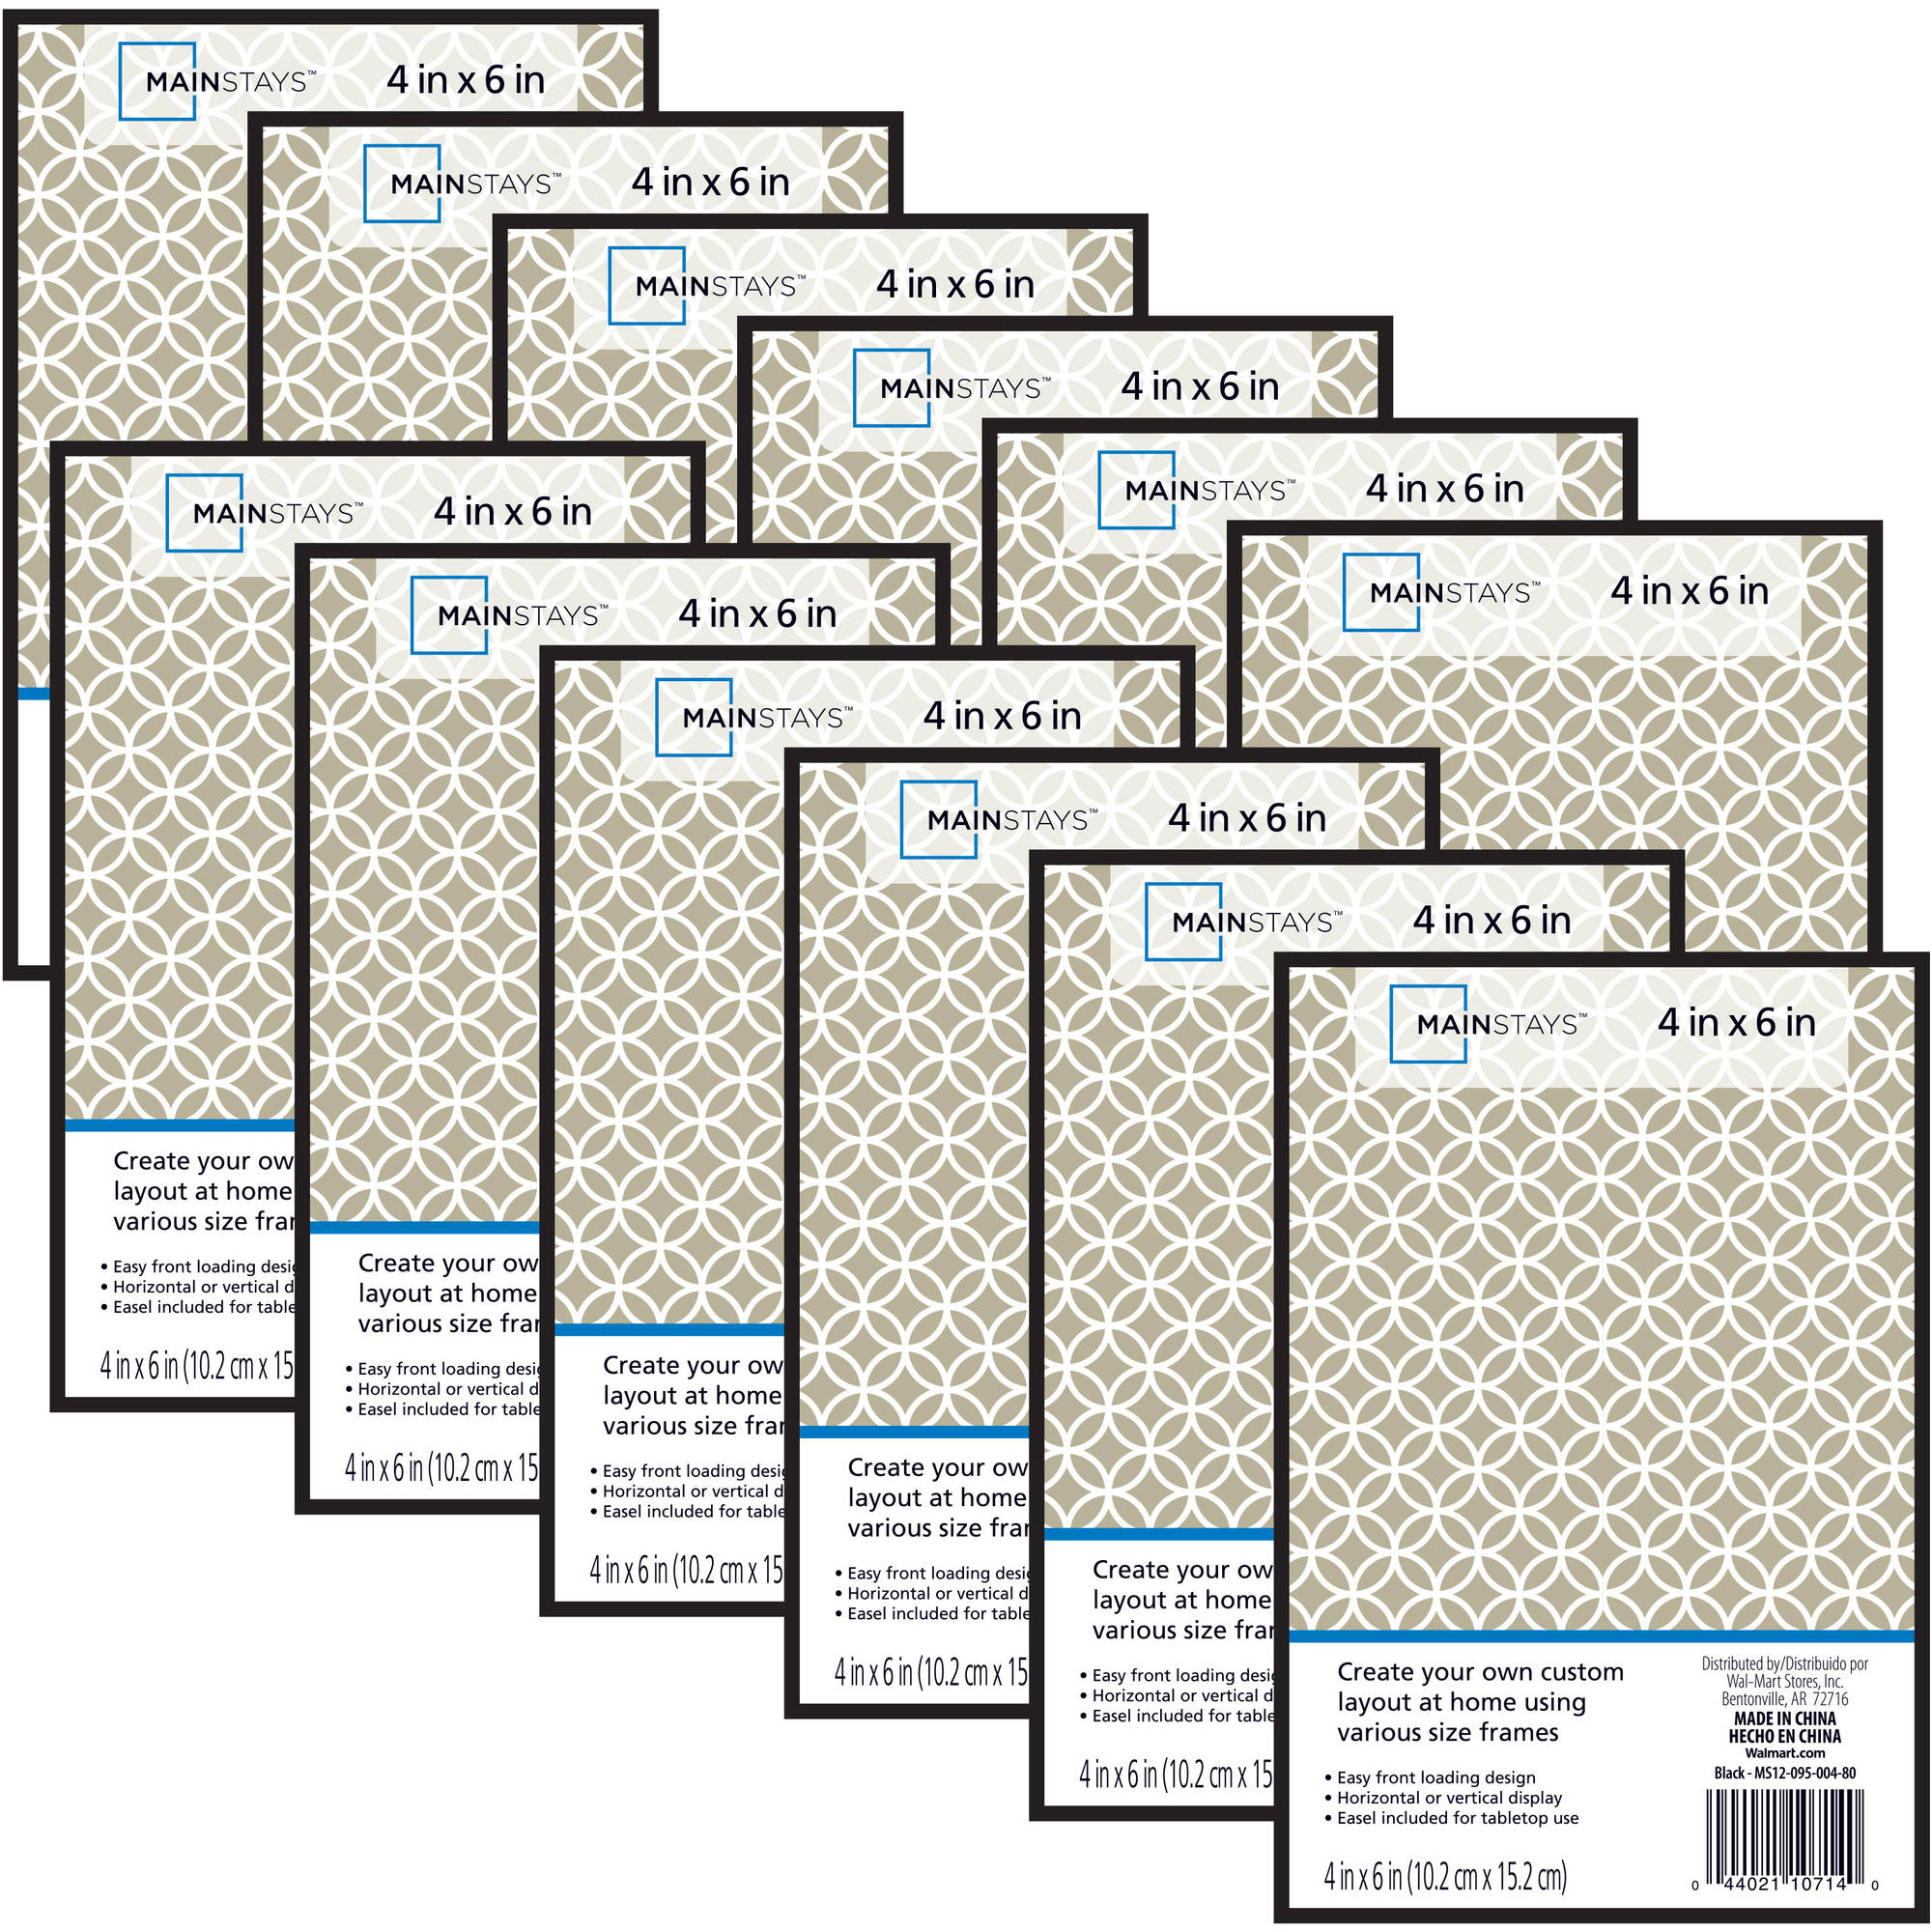 Mainstays 4x6 Format Picture Frame, Set of 12